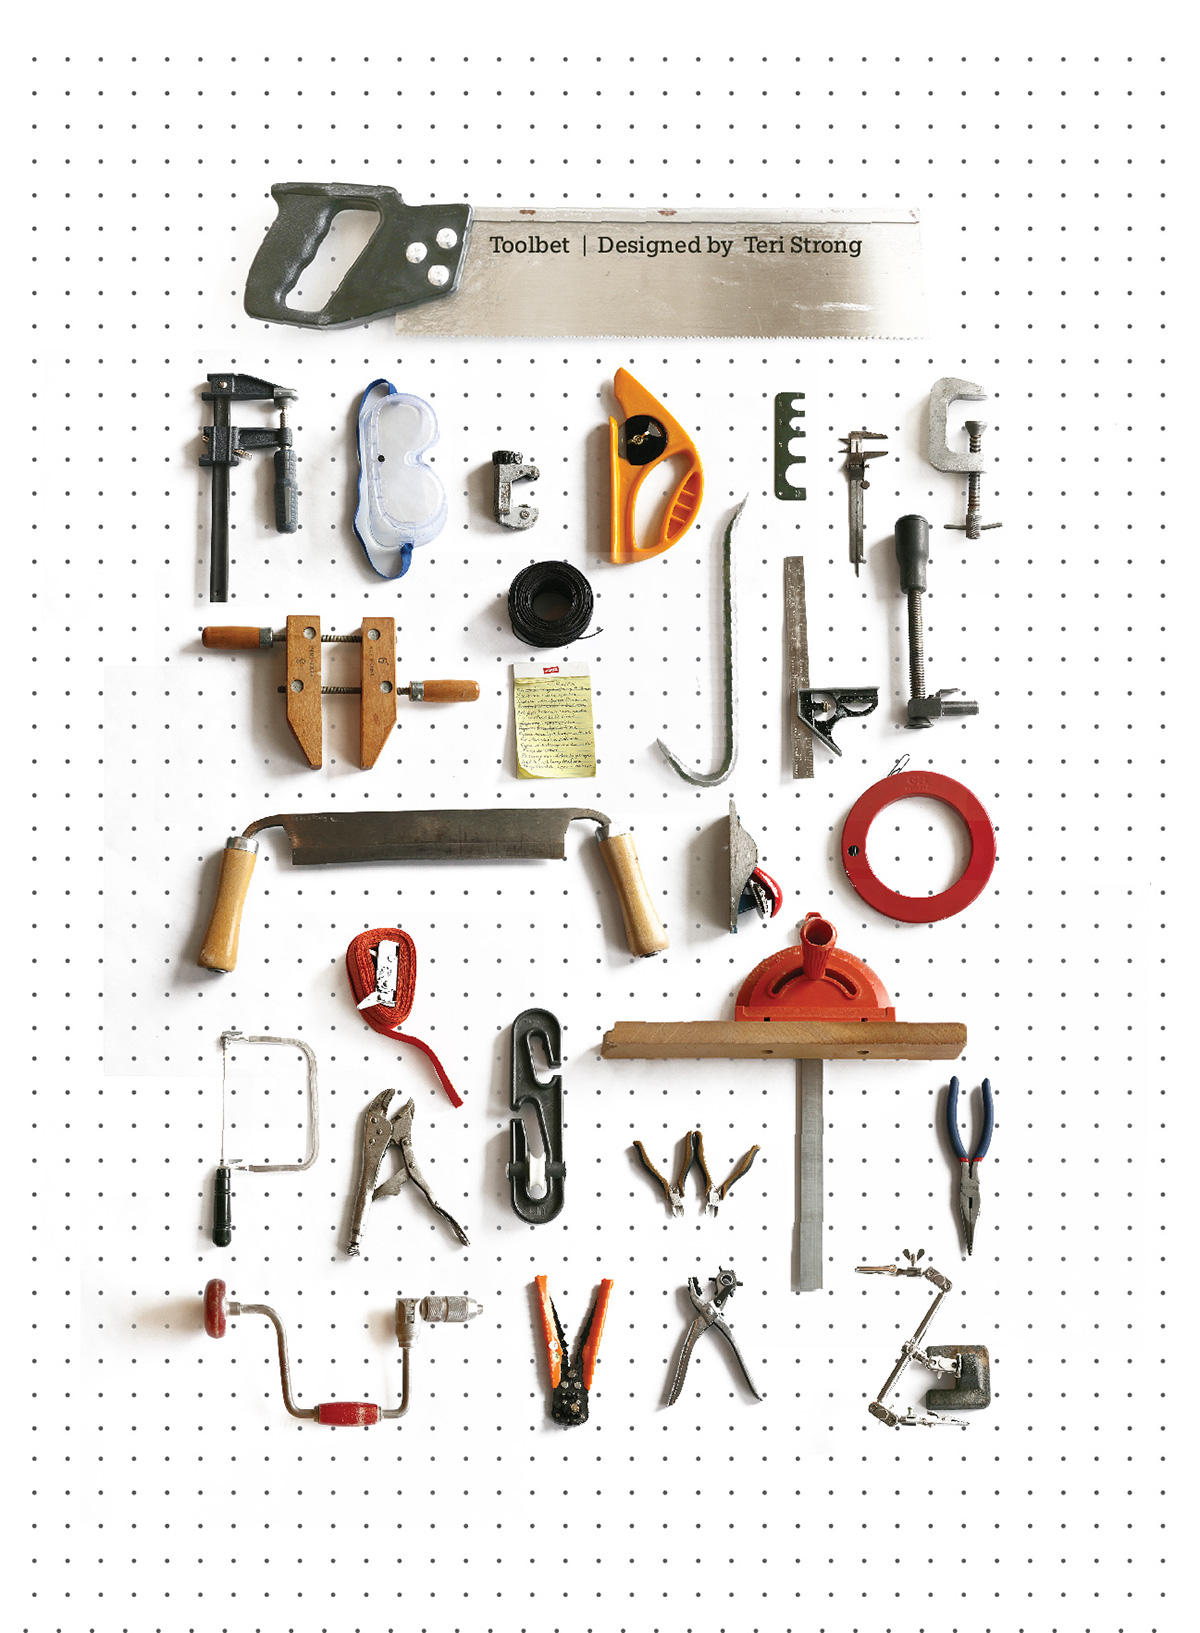 This Is My Visual Alphabet Poster Project For Art 235 The Assignment Was To Find Letters In Objects Without Overly Manipulating Create Them